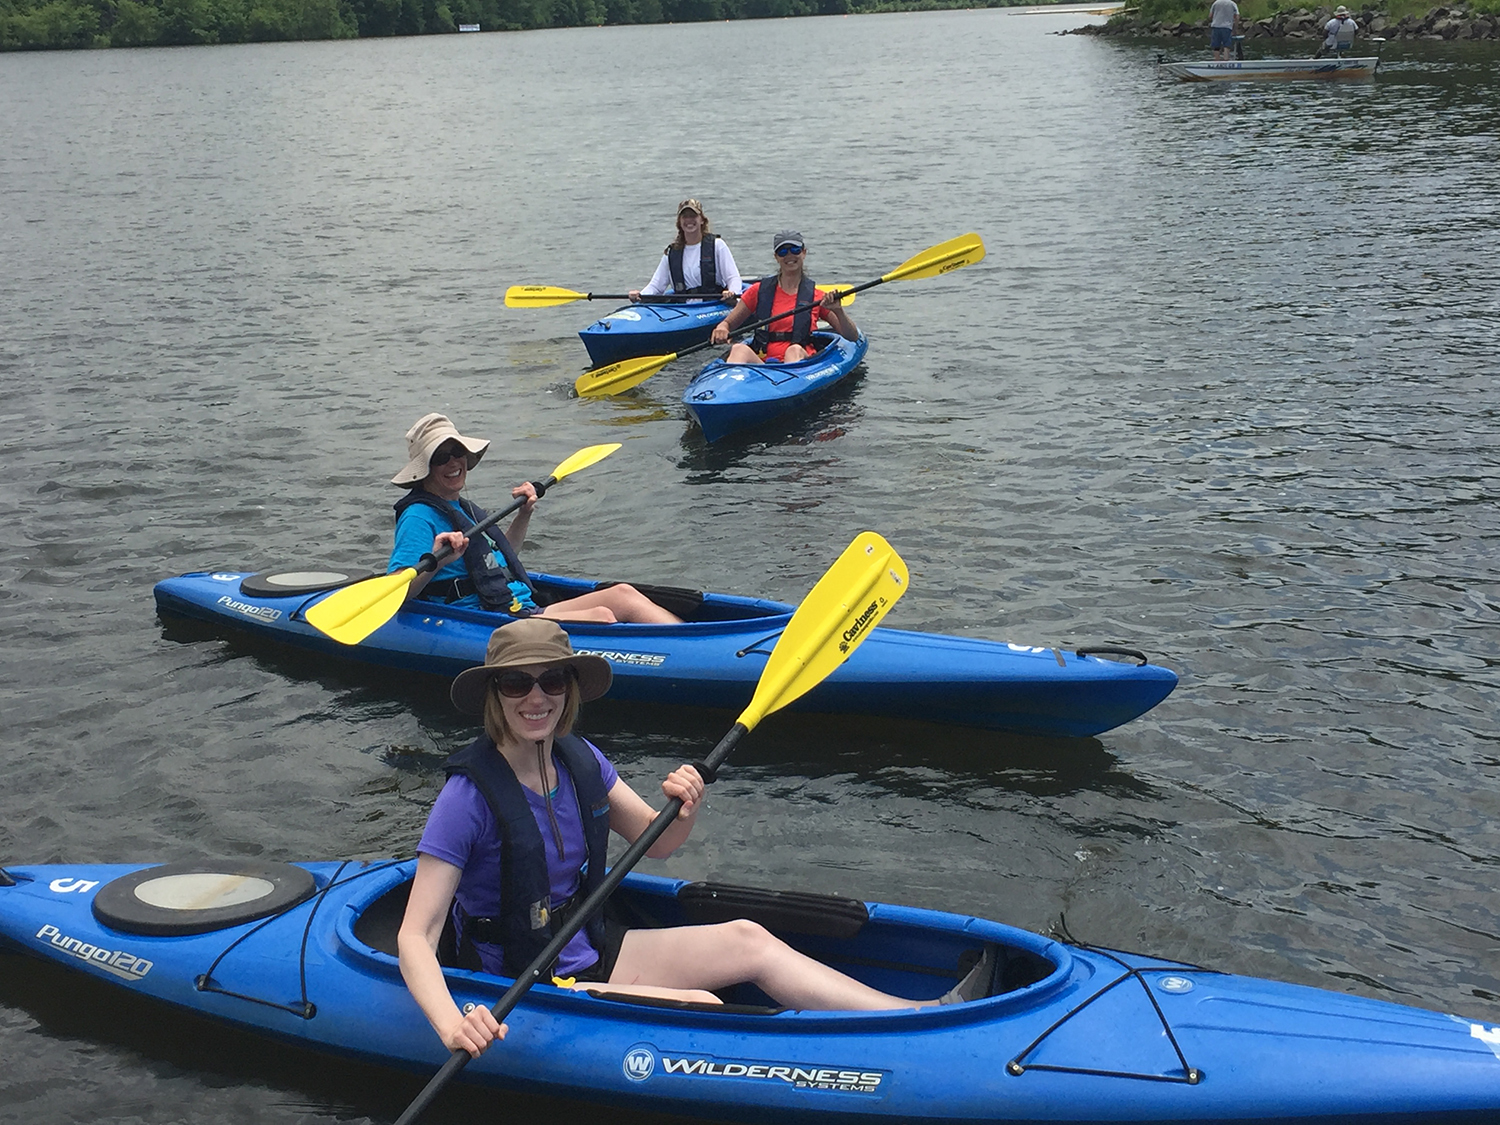 Kayak tours of Mercer Lake